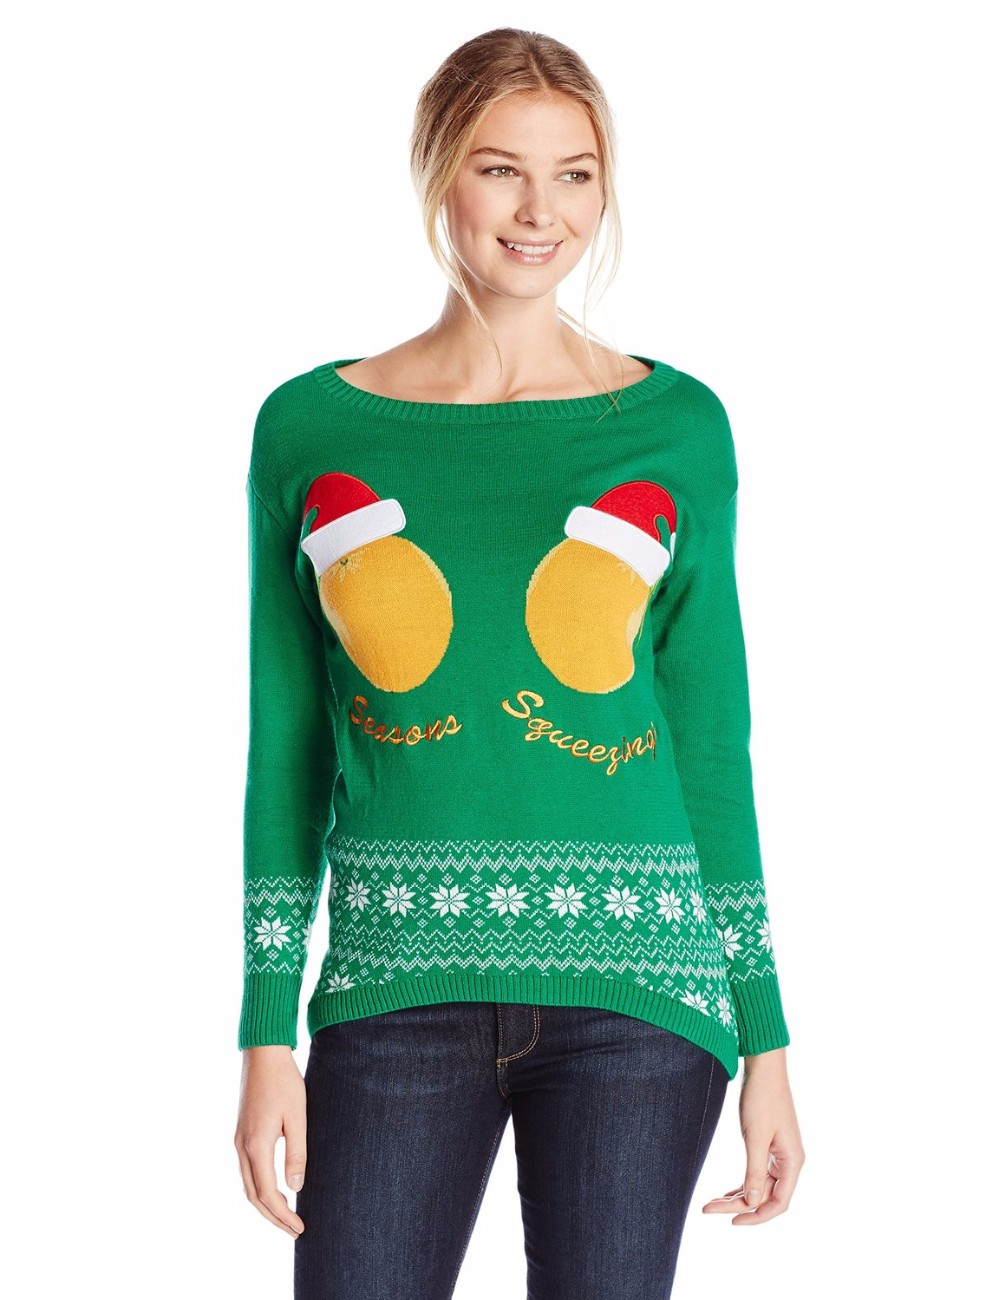 Ugly christma sweater